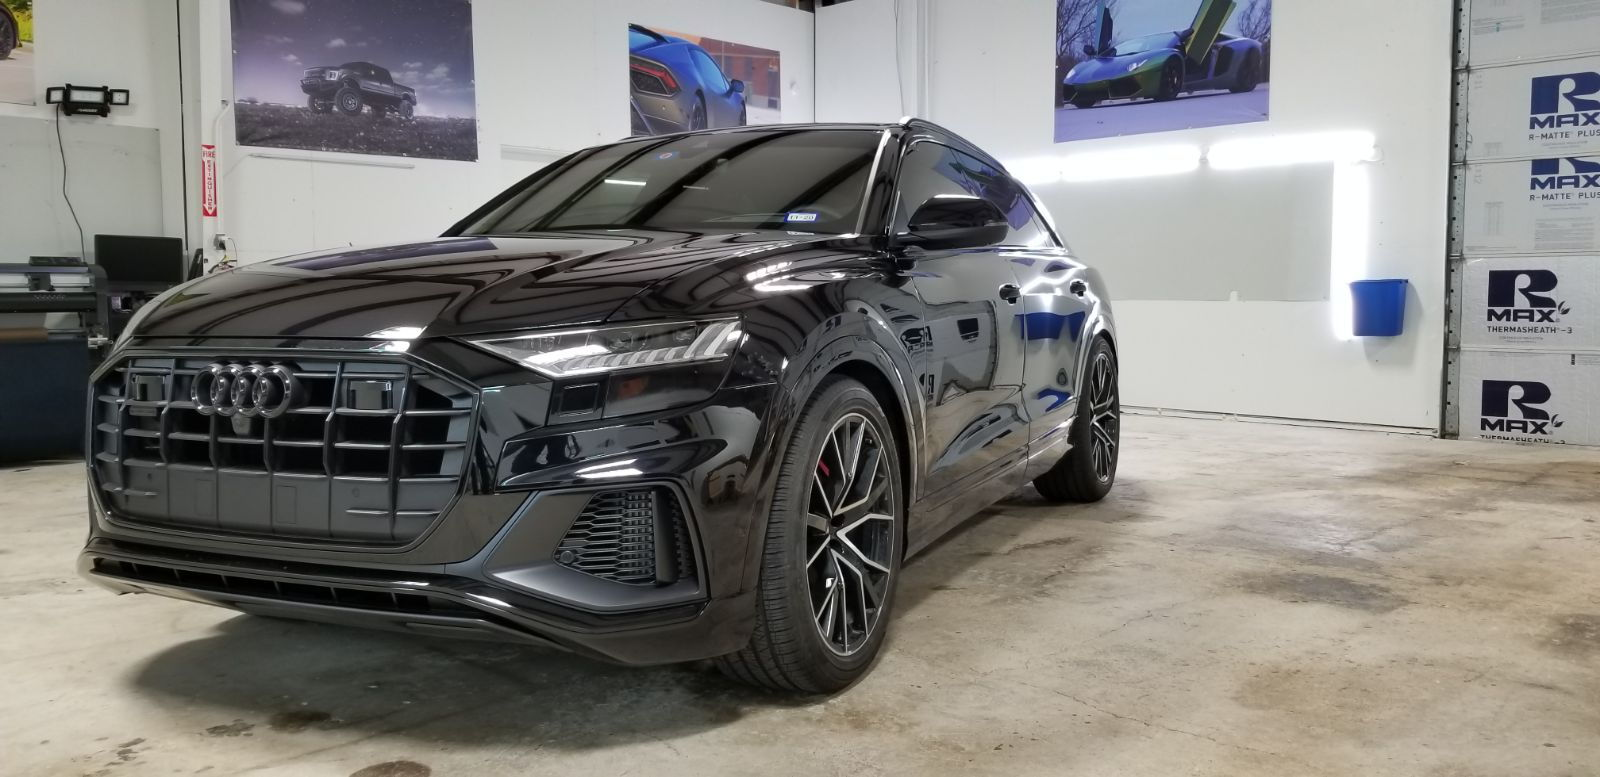 Blacked Out Tail Lights and Front Reflector Section - AudiWorld Forums